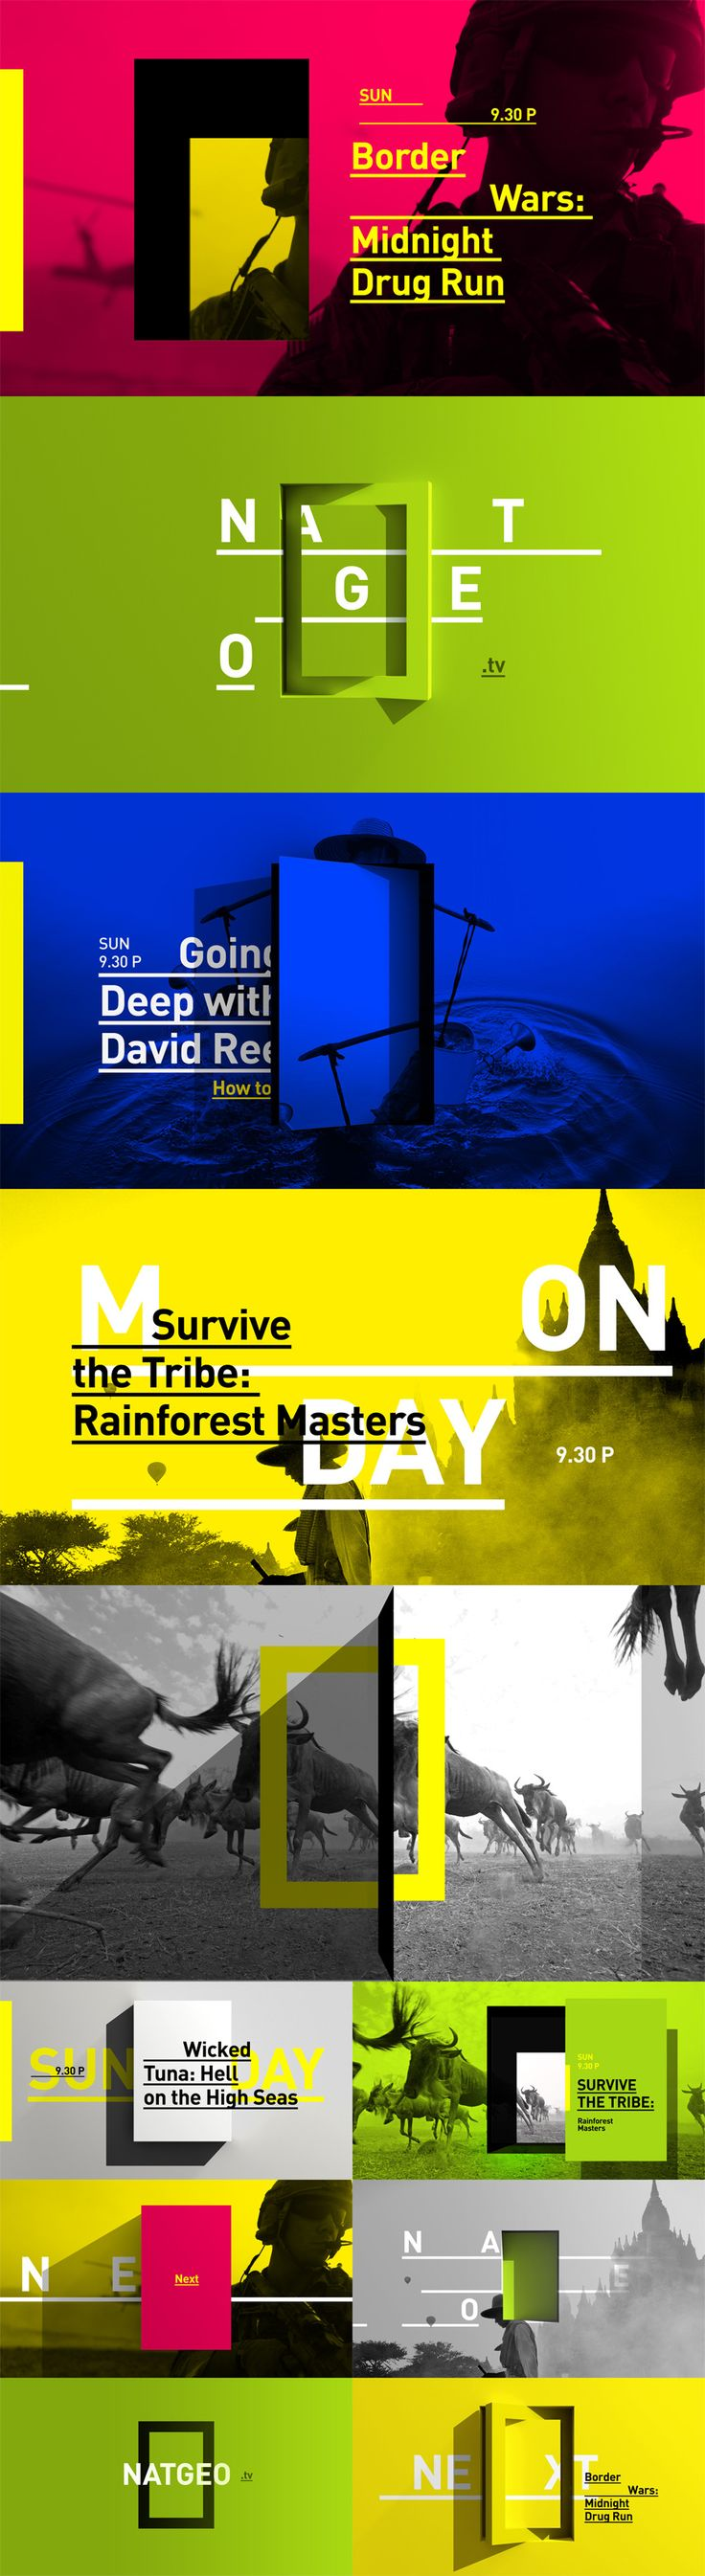 Bright Colors / Color Fields / Duotone Photos / Type Treatments /// Nat Geo Rebranding - Carla Dasso